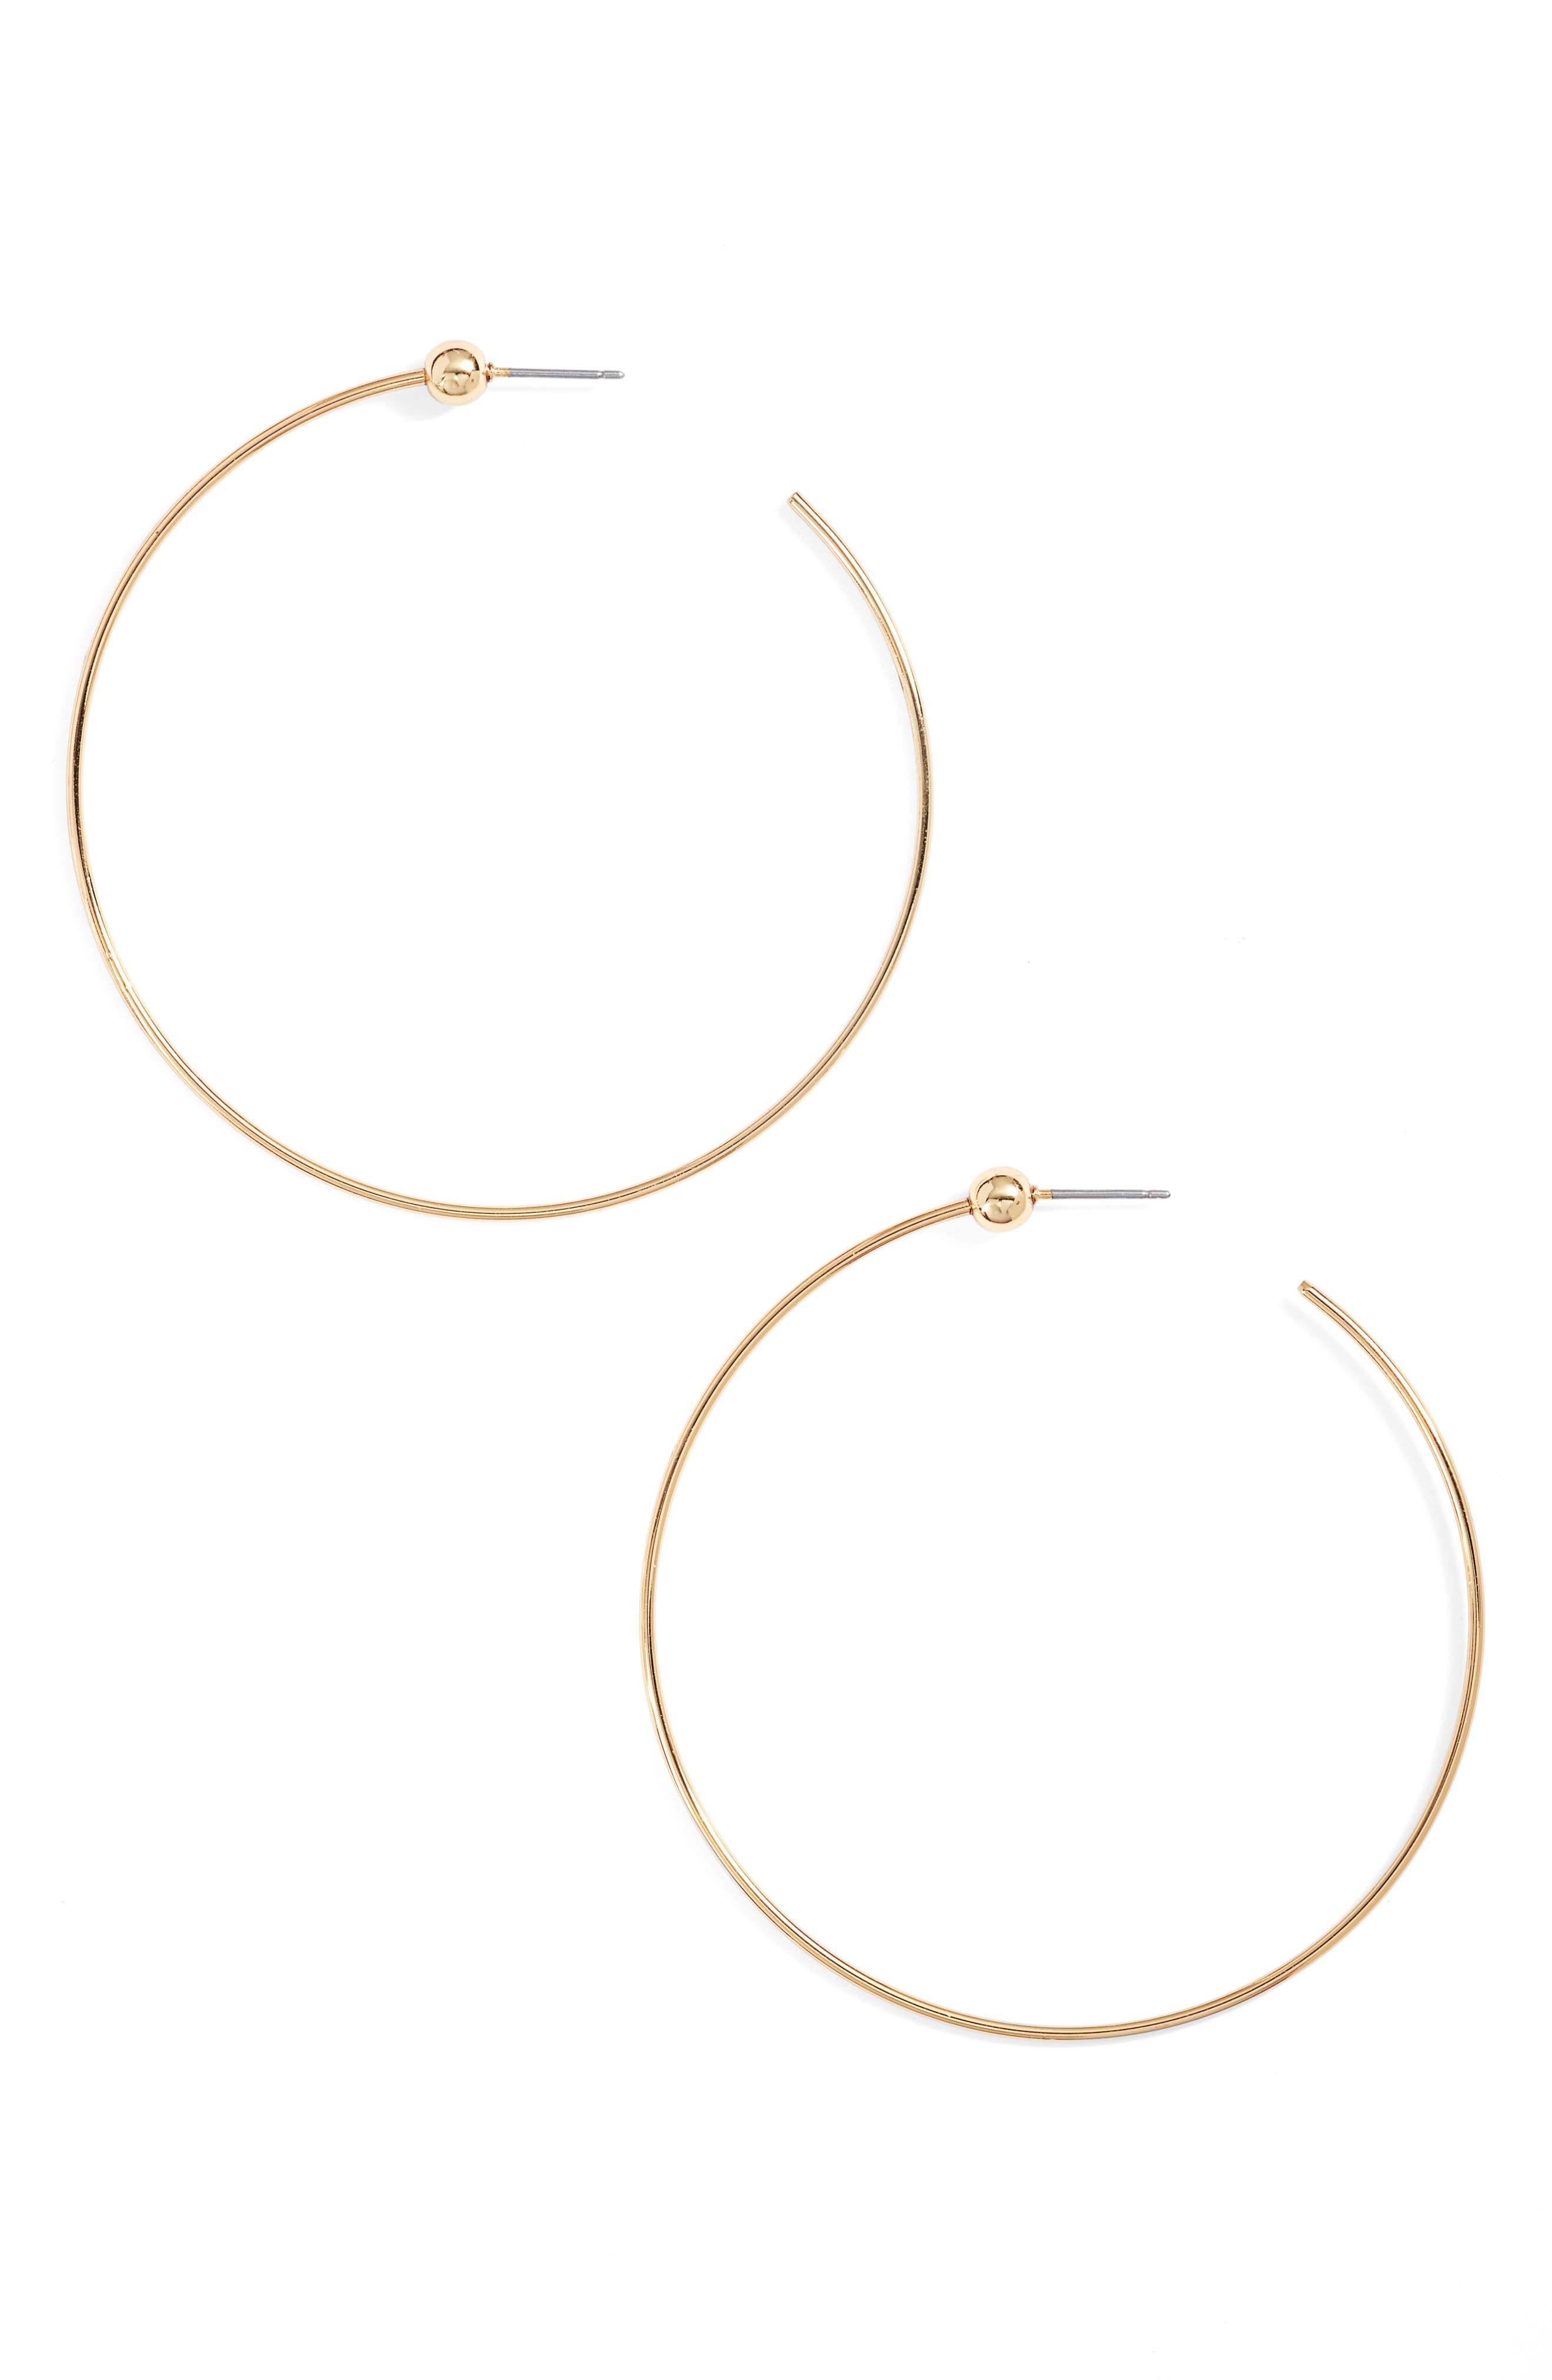 Medium Hoop Earrings,                         Main,                         color, Gold